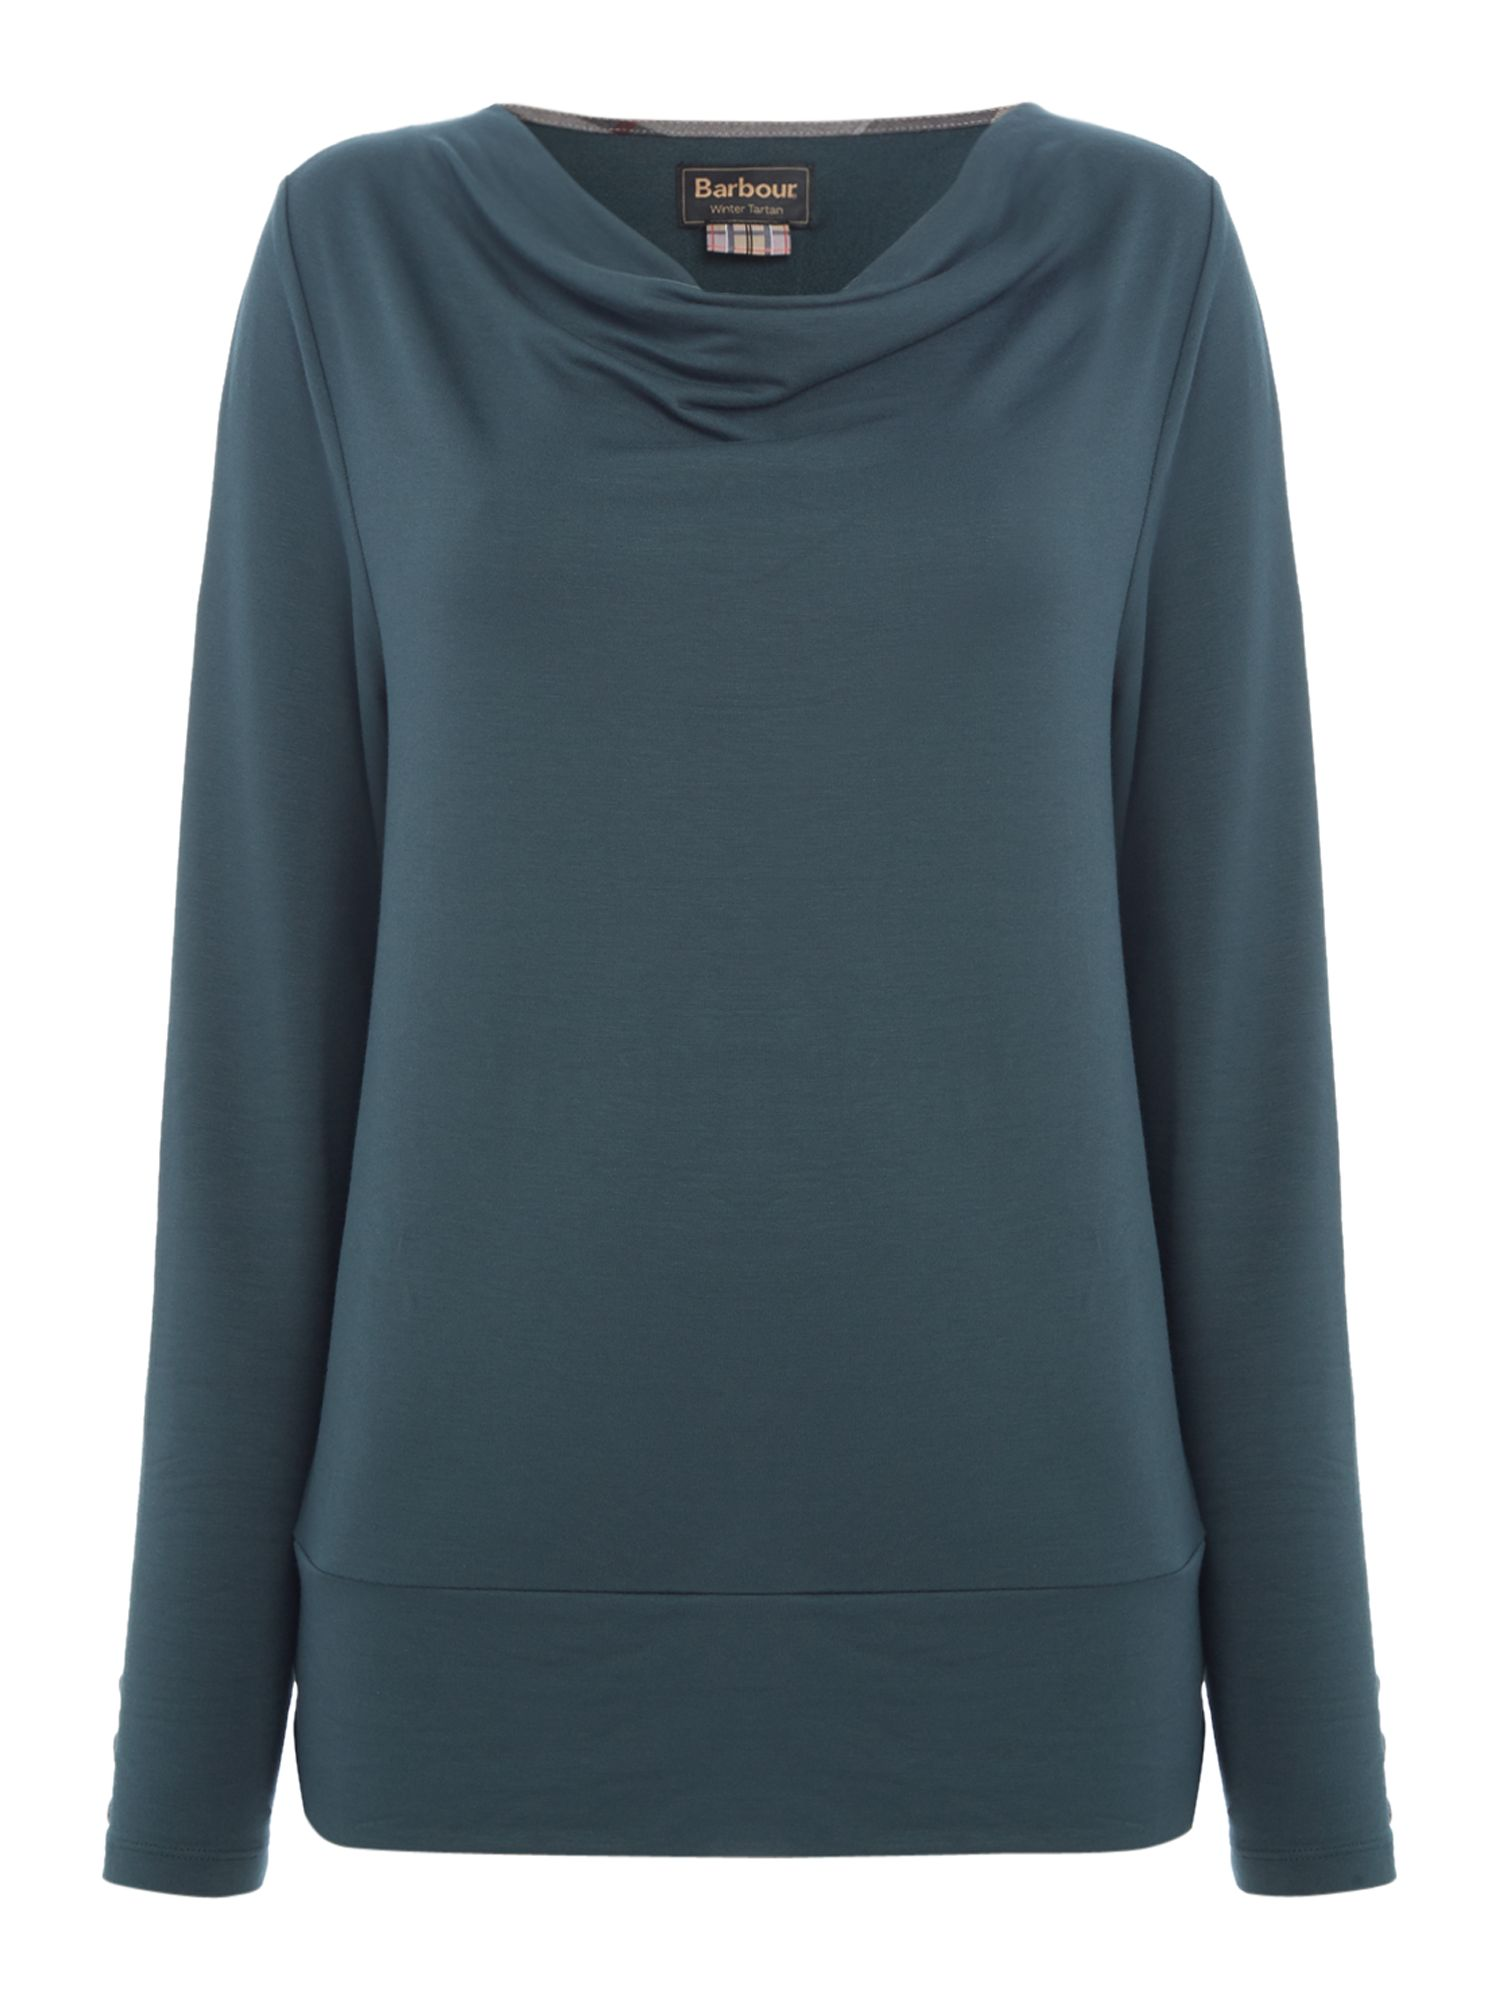 Barbour Cowl Neck Galloway Top With Hem Detail, Emerald